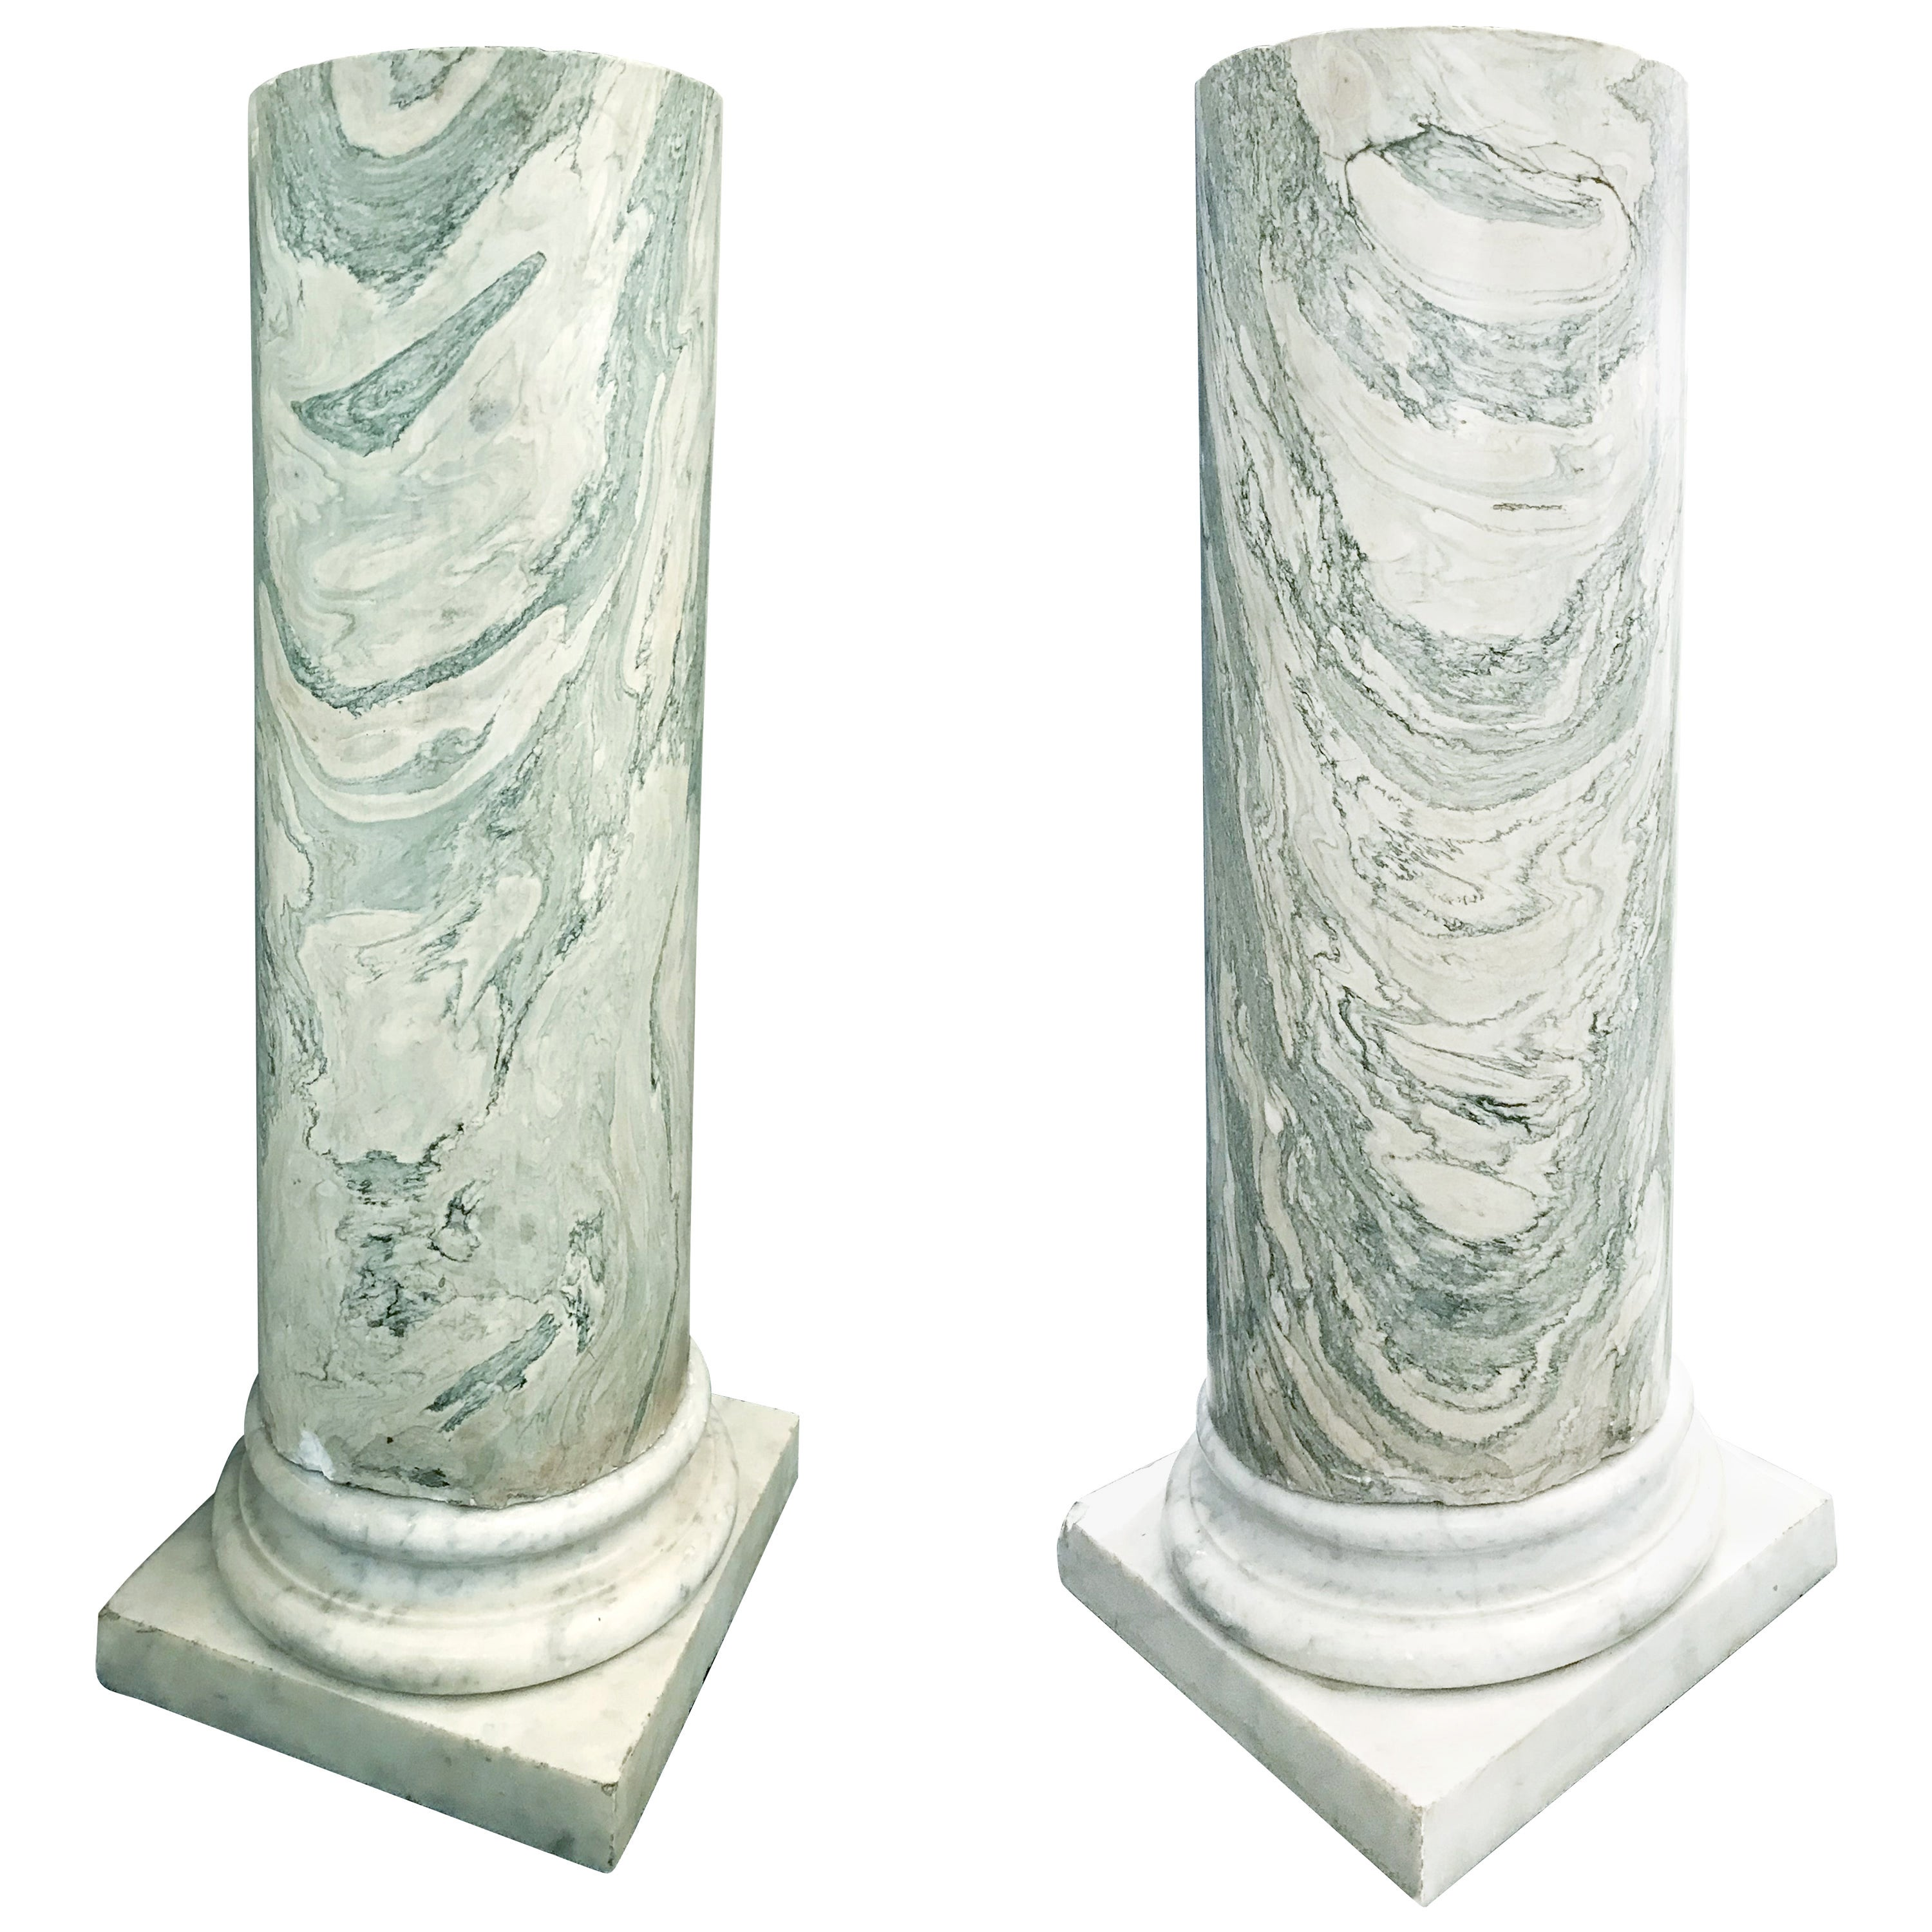 Pair of Marble Columns, Italy, Late 19th Century